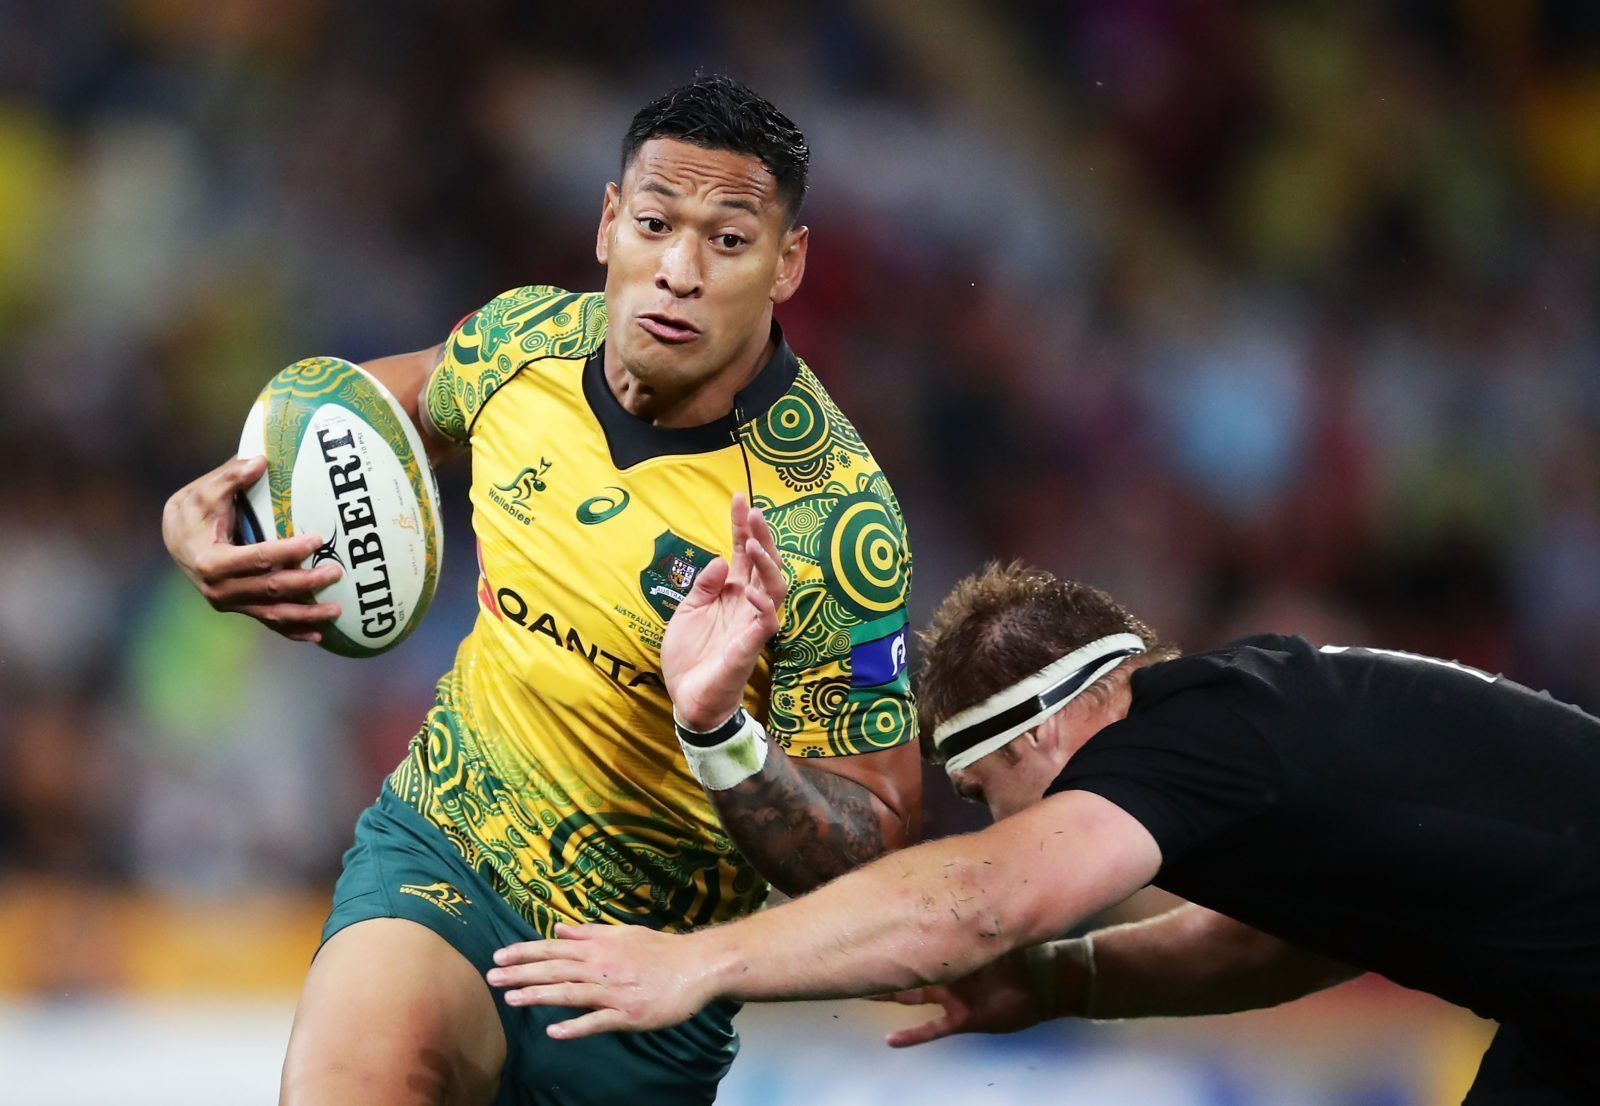 BRISBANE, AUSTRALIA - OCTOBER 21: Israel Folau of the Wallabies is tackled during the Bledisloe Cup match between the Australian Wallabies and the New Zealand All Blacks at Suncorp Stadium on October 21, 2017 in Brisbane, Australia. (Photo by Matt King/Getty Images)